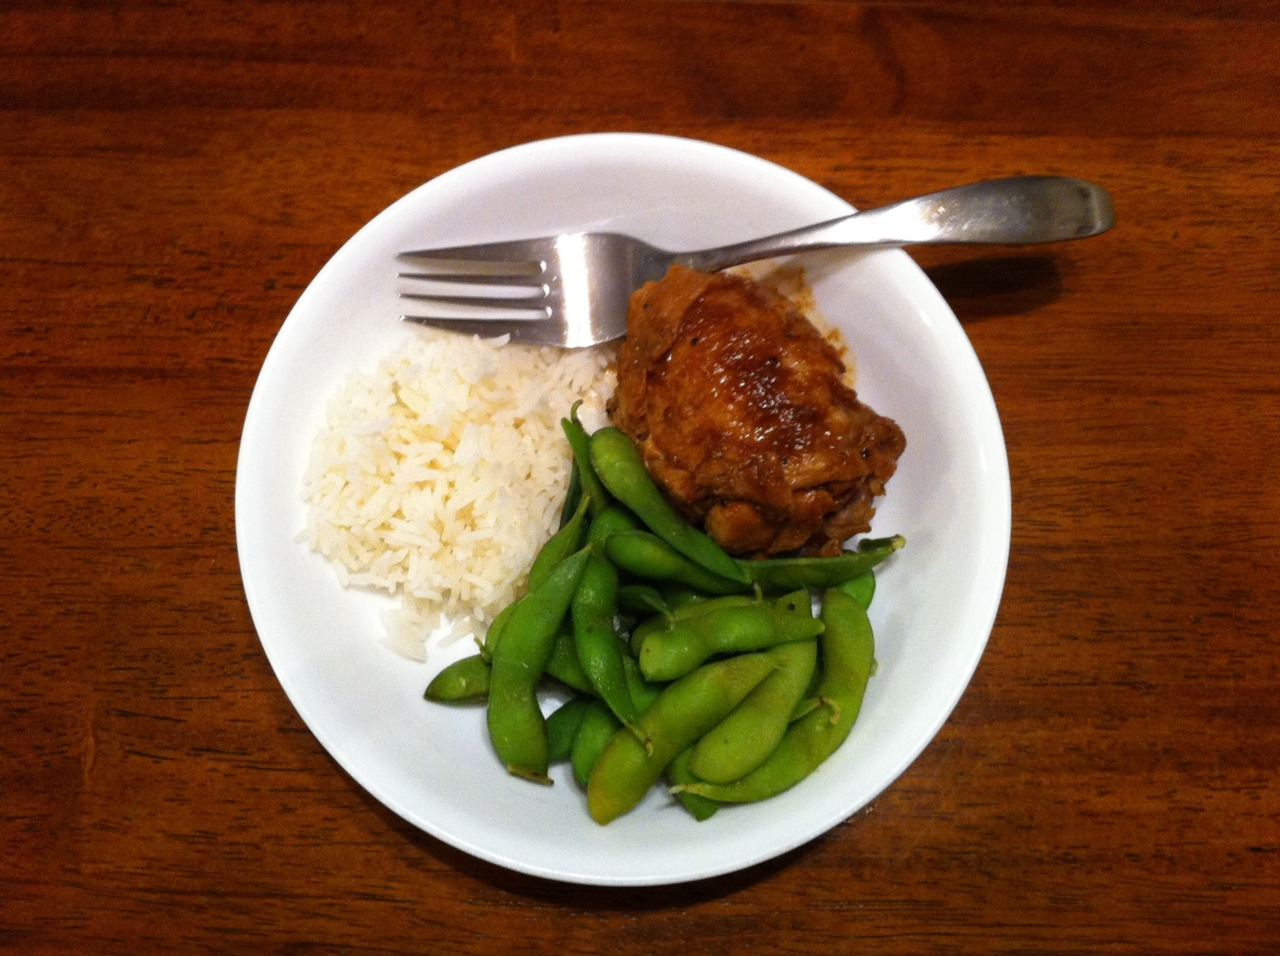 Shelby made us dinner the other night. Adobo Chicken with Edamame. Lots of flavor! Thanks Shelby :)